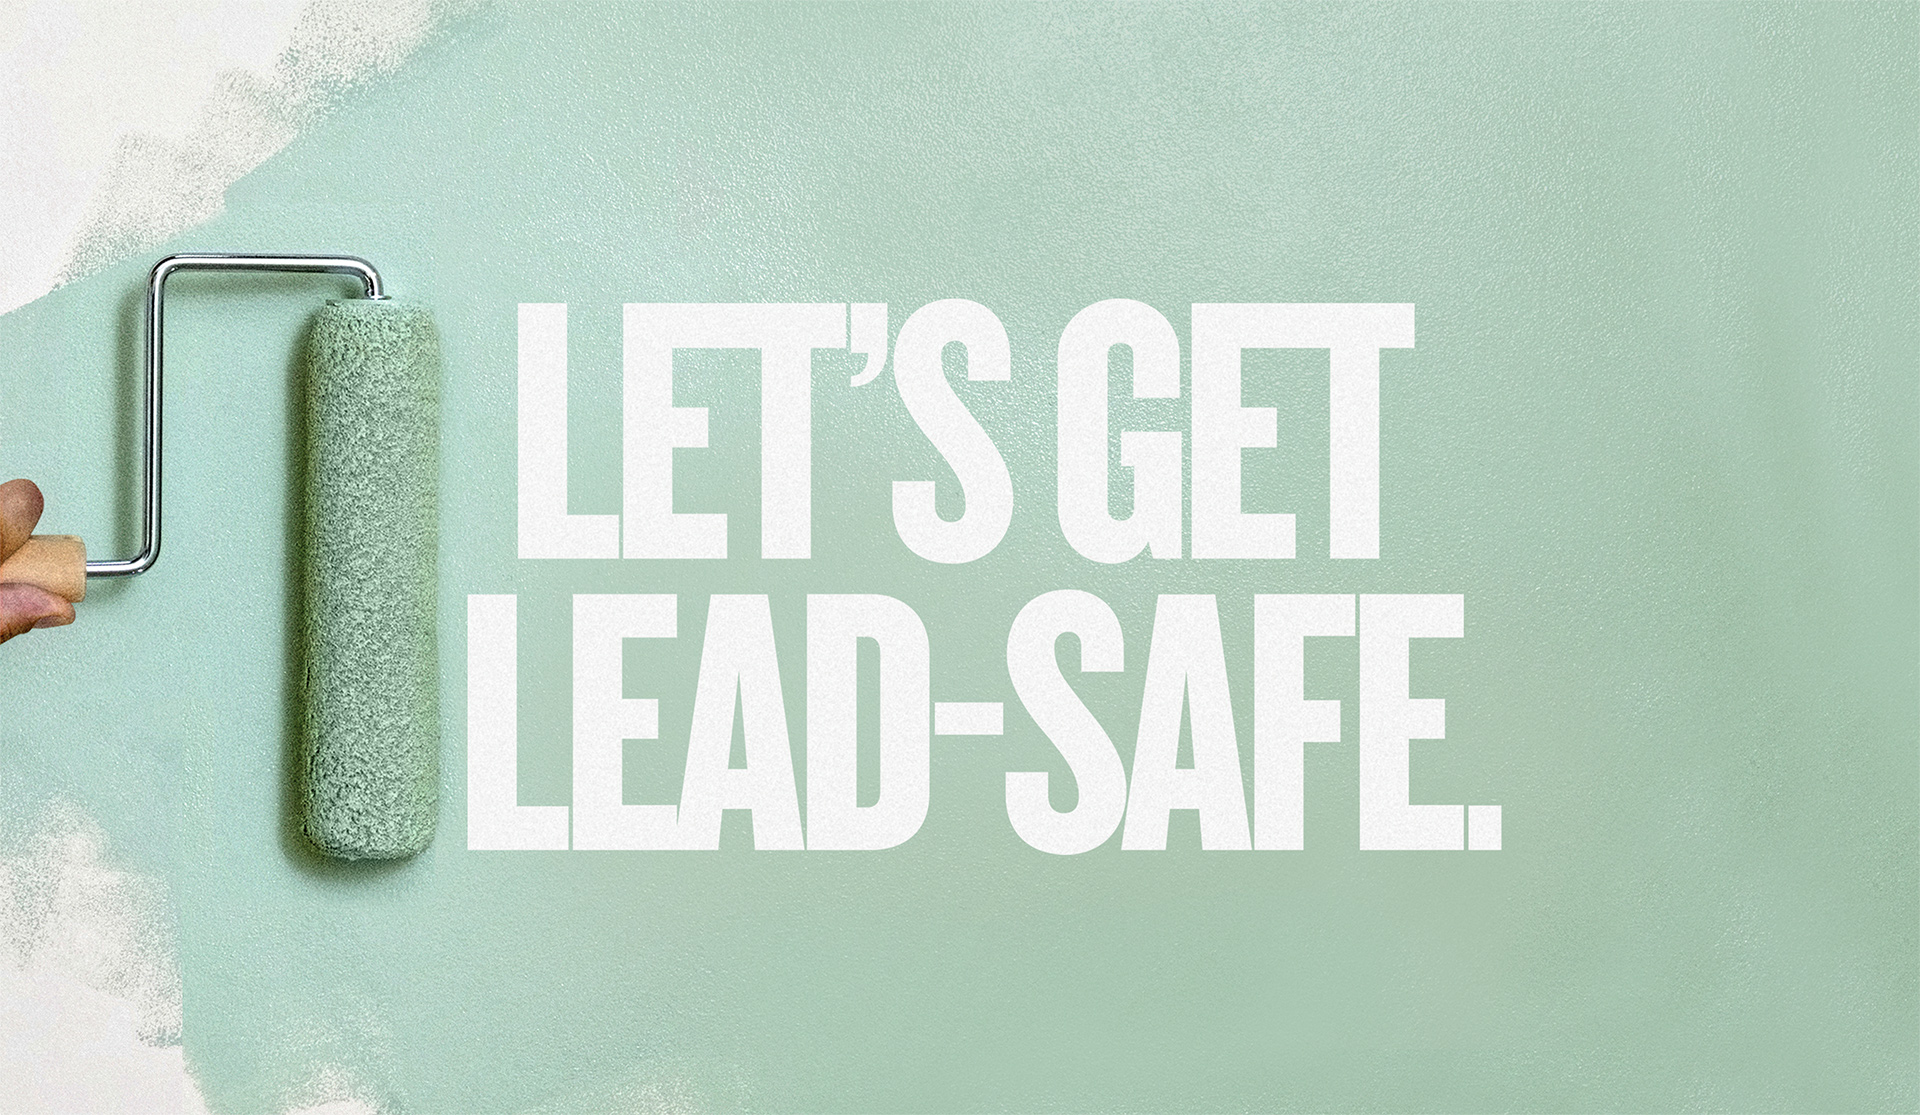 Let's Get Lead Safe